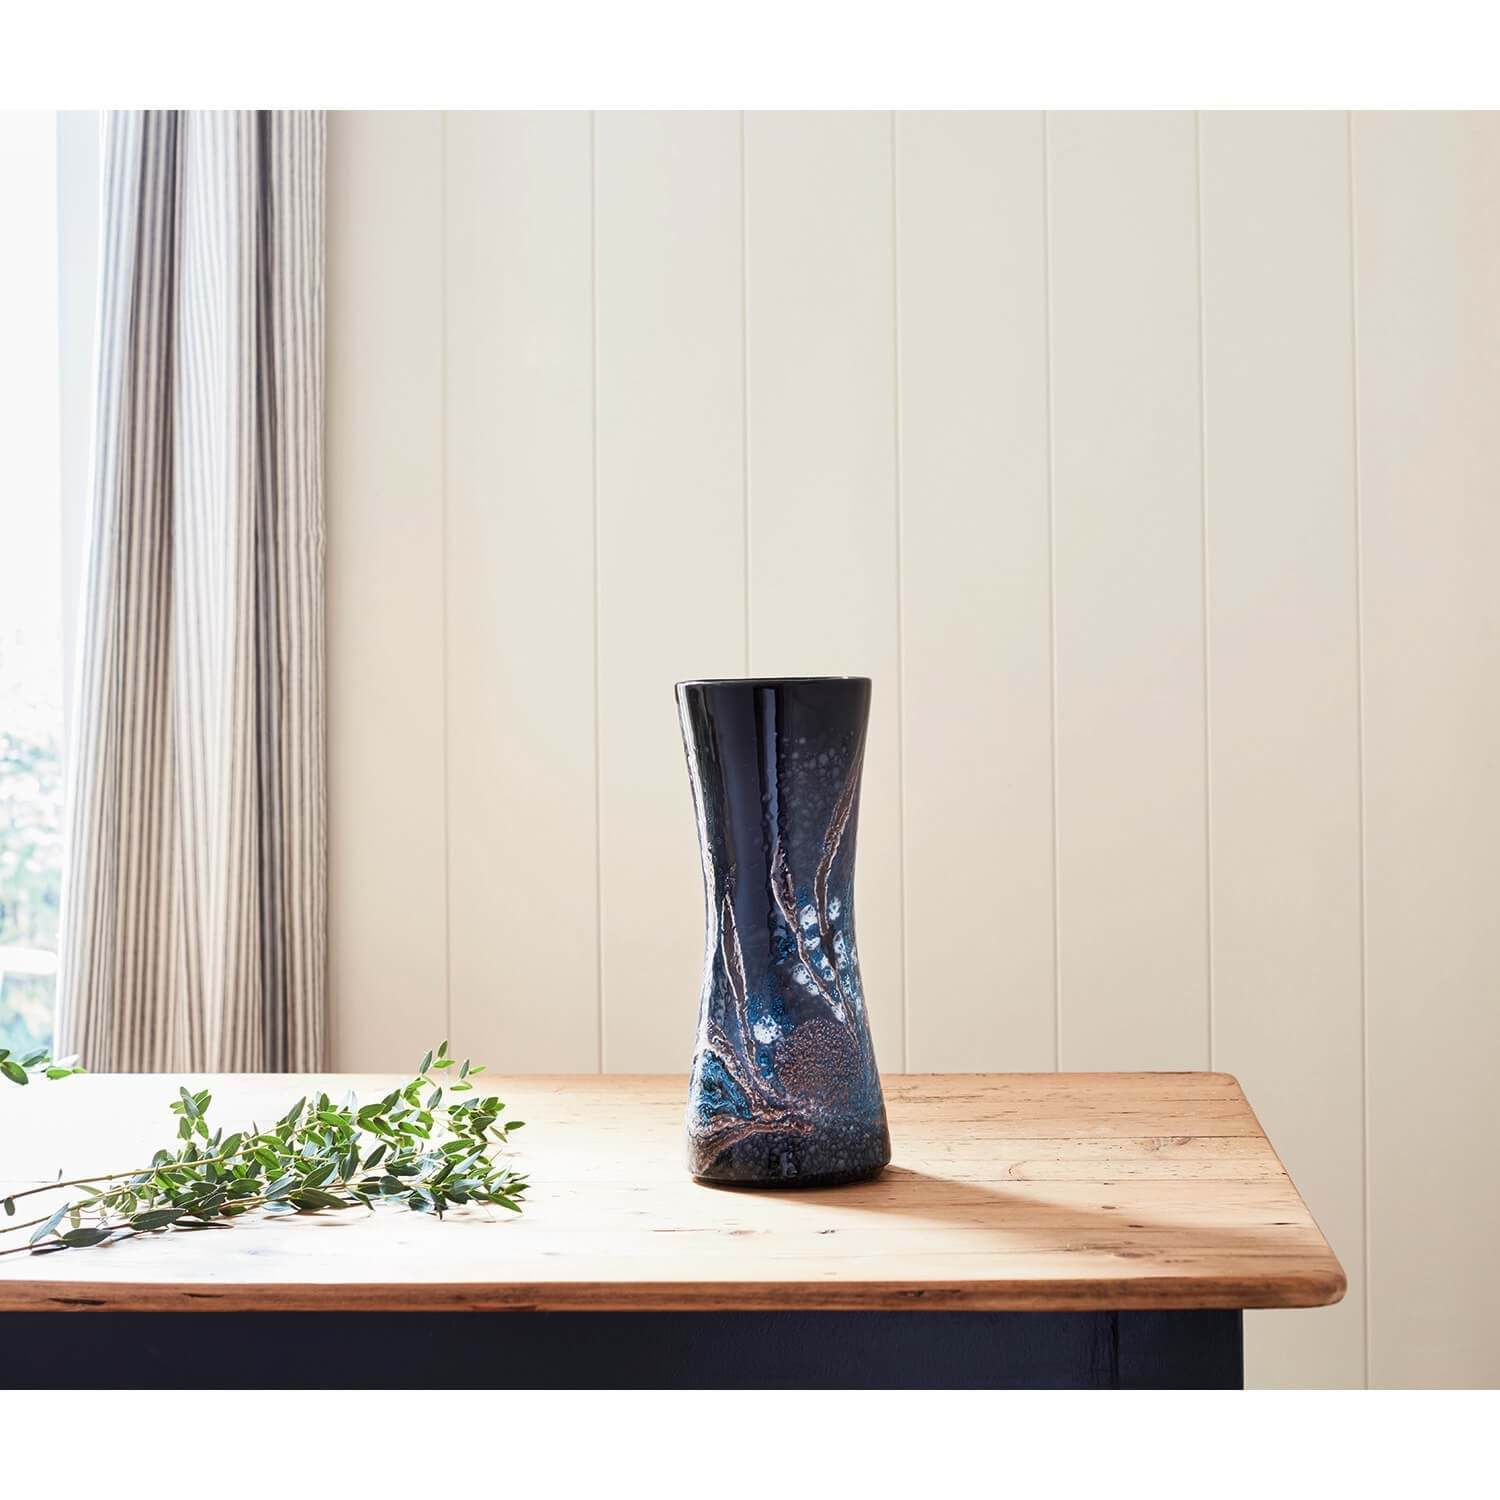 Image of Poole Pottery Celestial Hourglass Vase